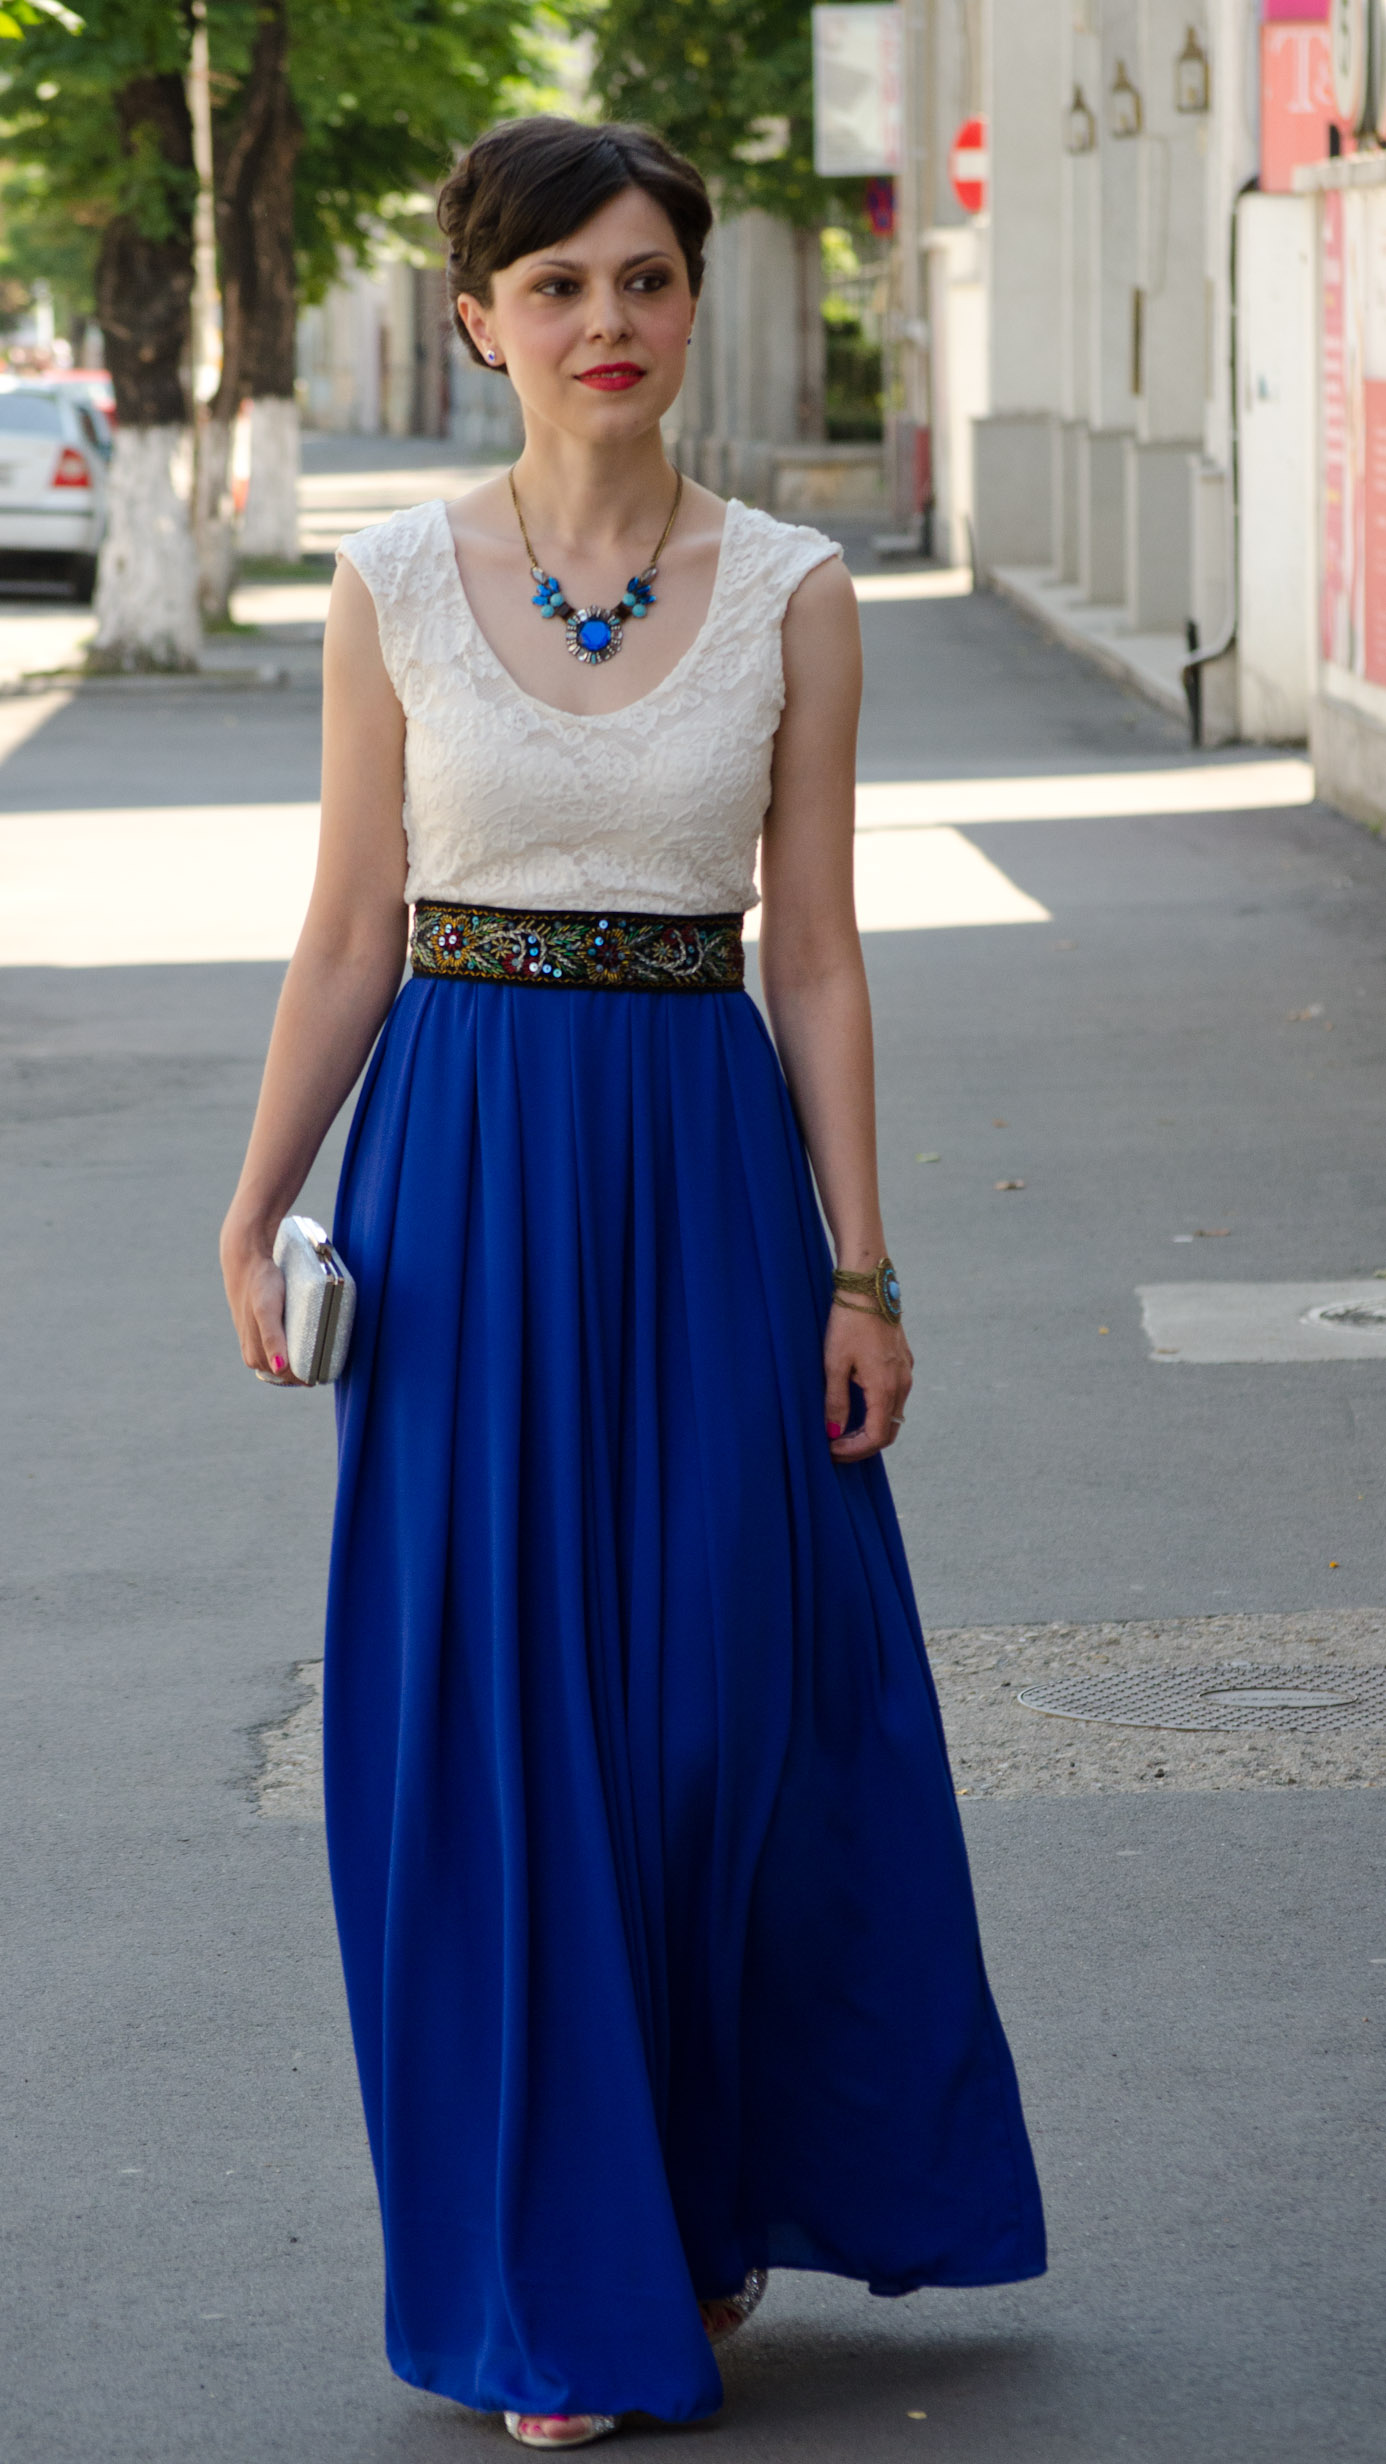 maxi dress cobalt blue white lace statement necklace blue topper hat wedding attire handmade waistband